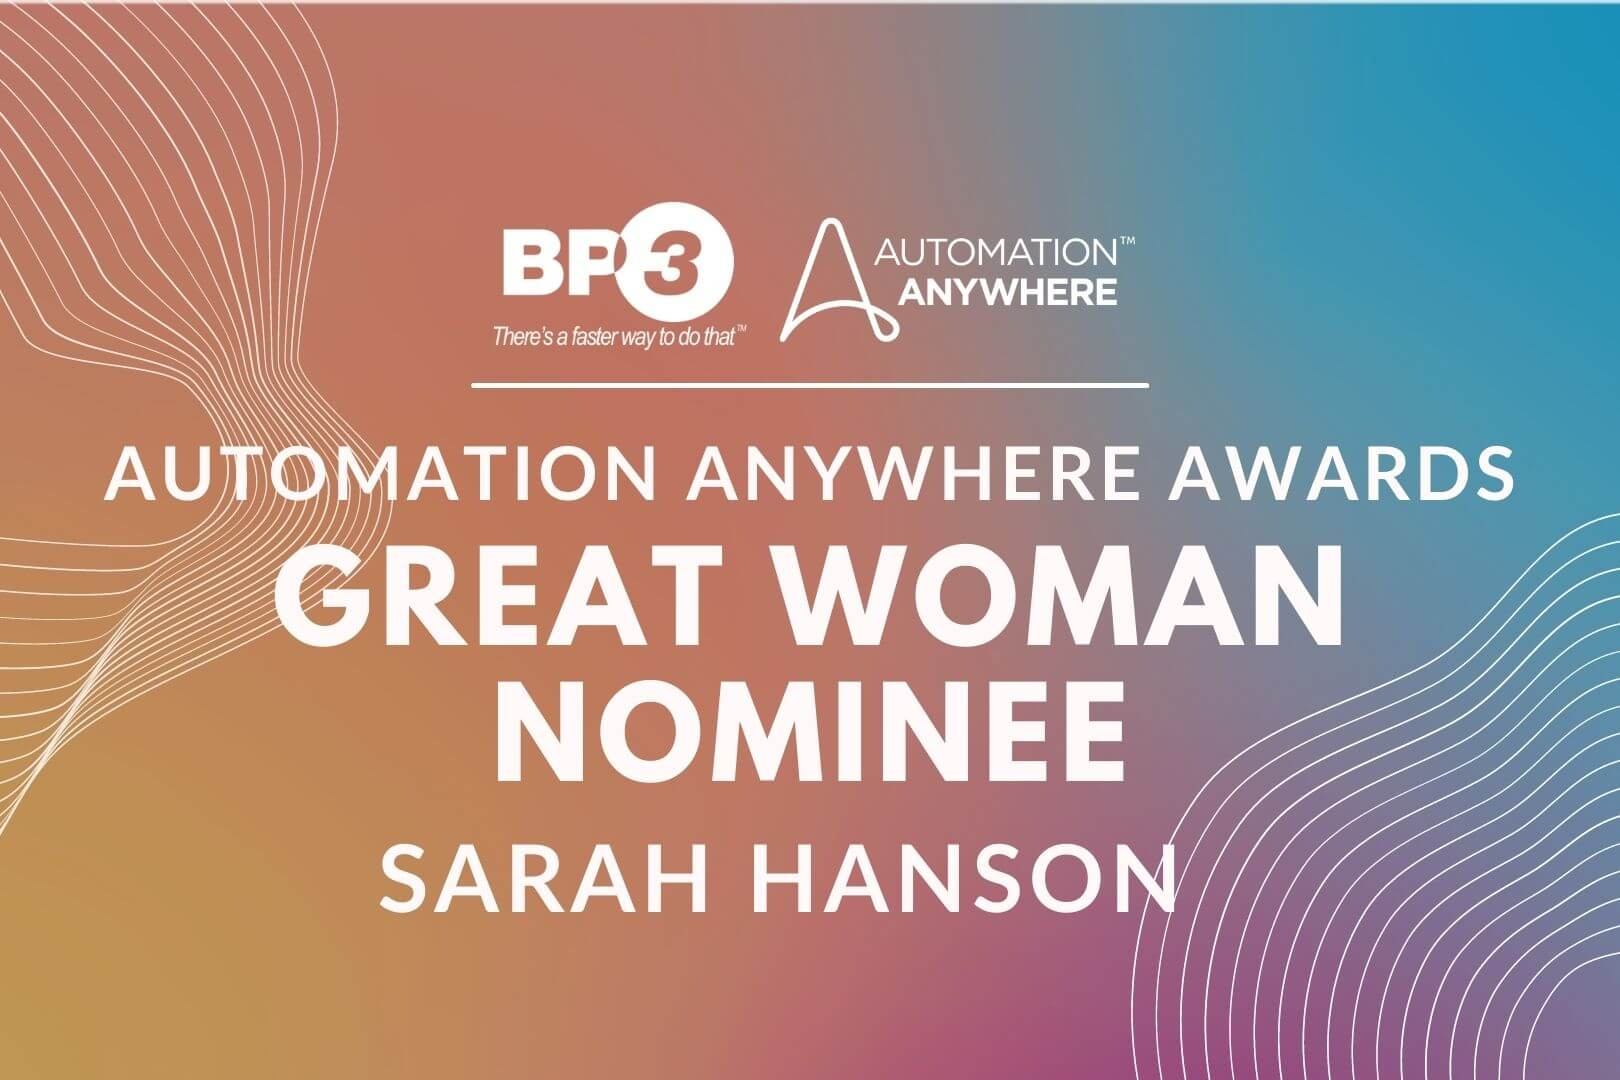 Congratulations to Sarah for being a nominee for Automation Anywhere's Great Woman Award. Well deserved!